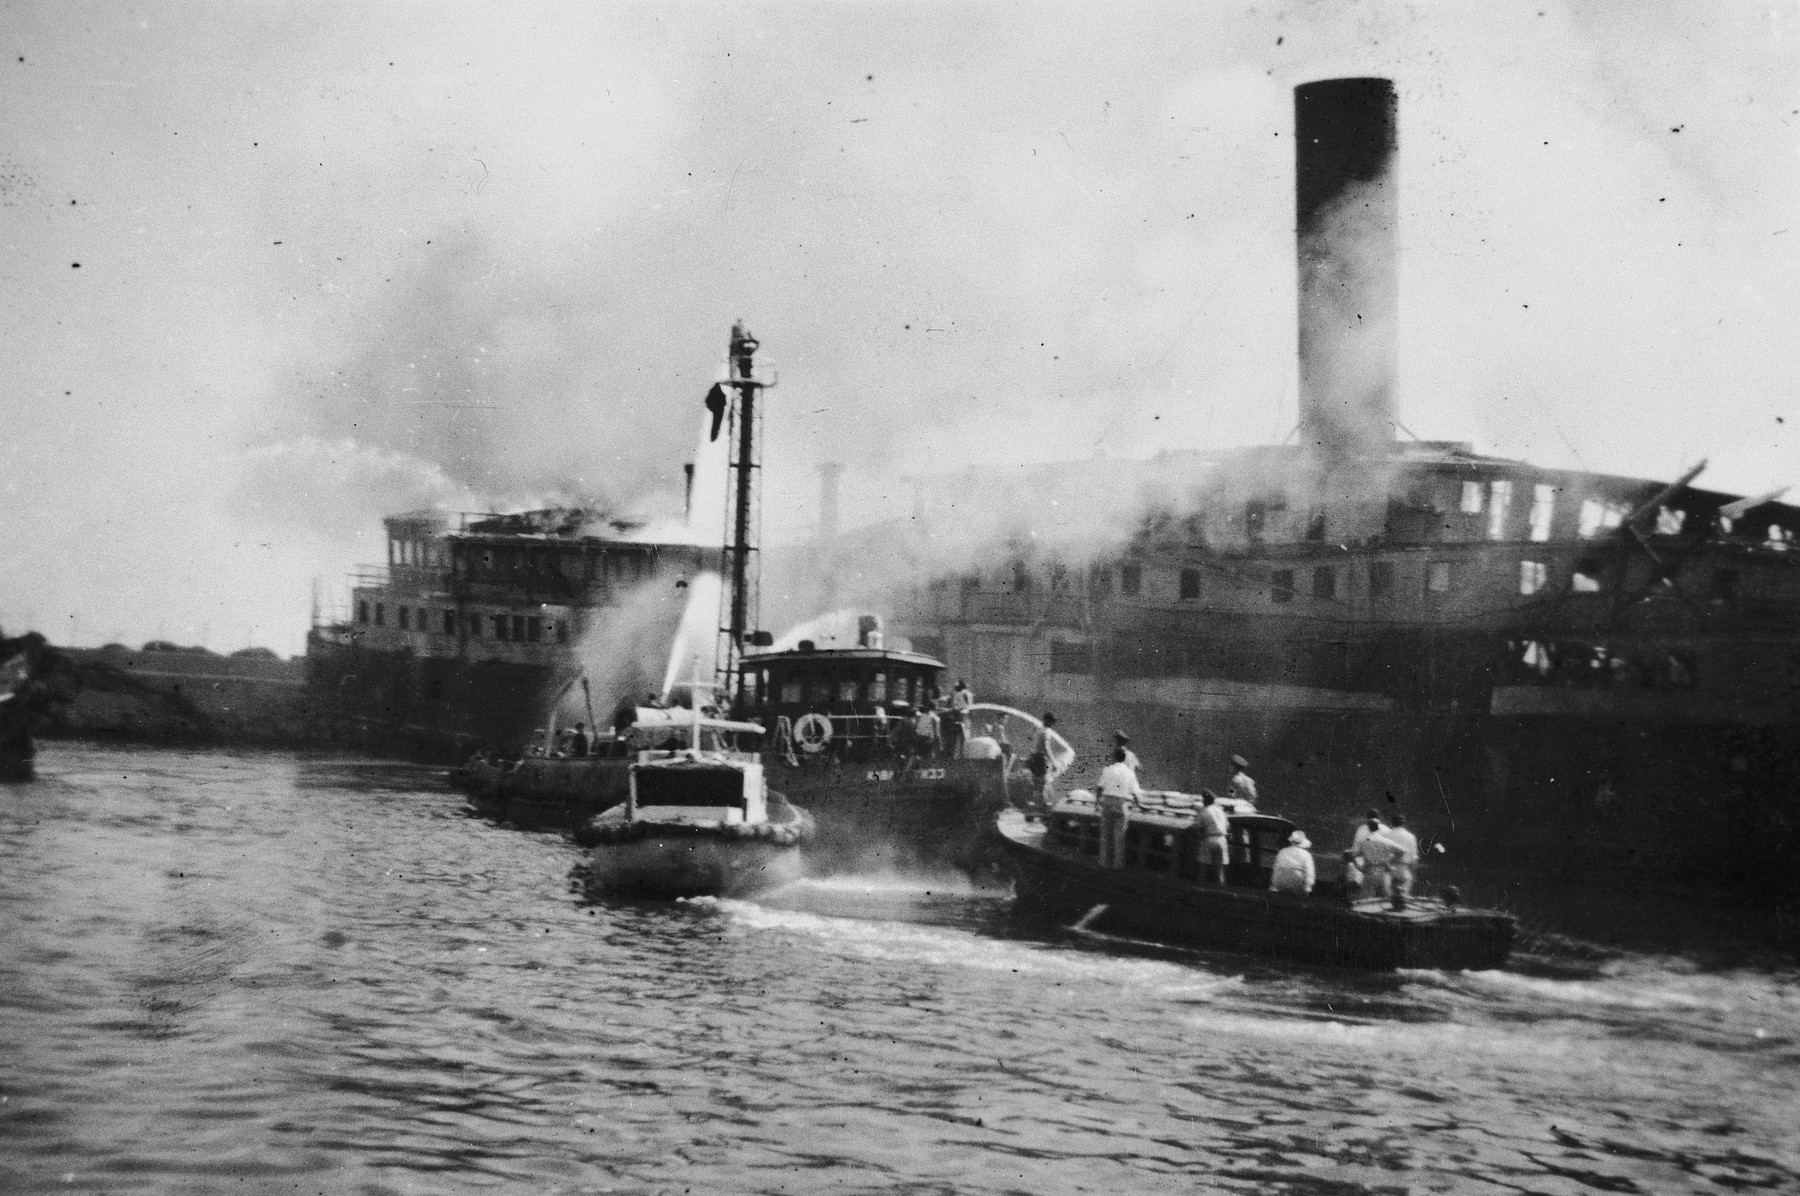 Fireboats try to put out a fire on the Exodus 1947 ship in Haifa harbor.